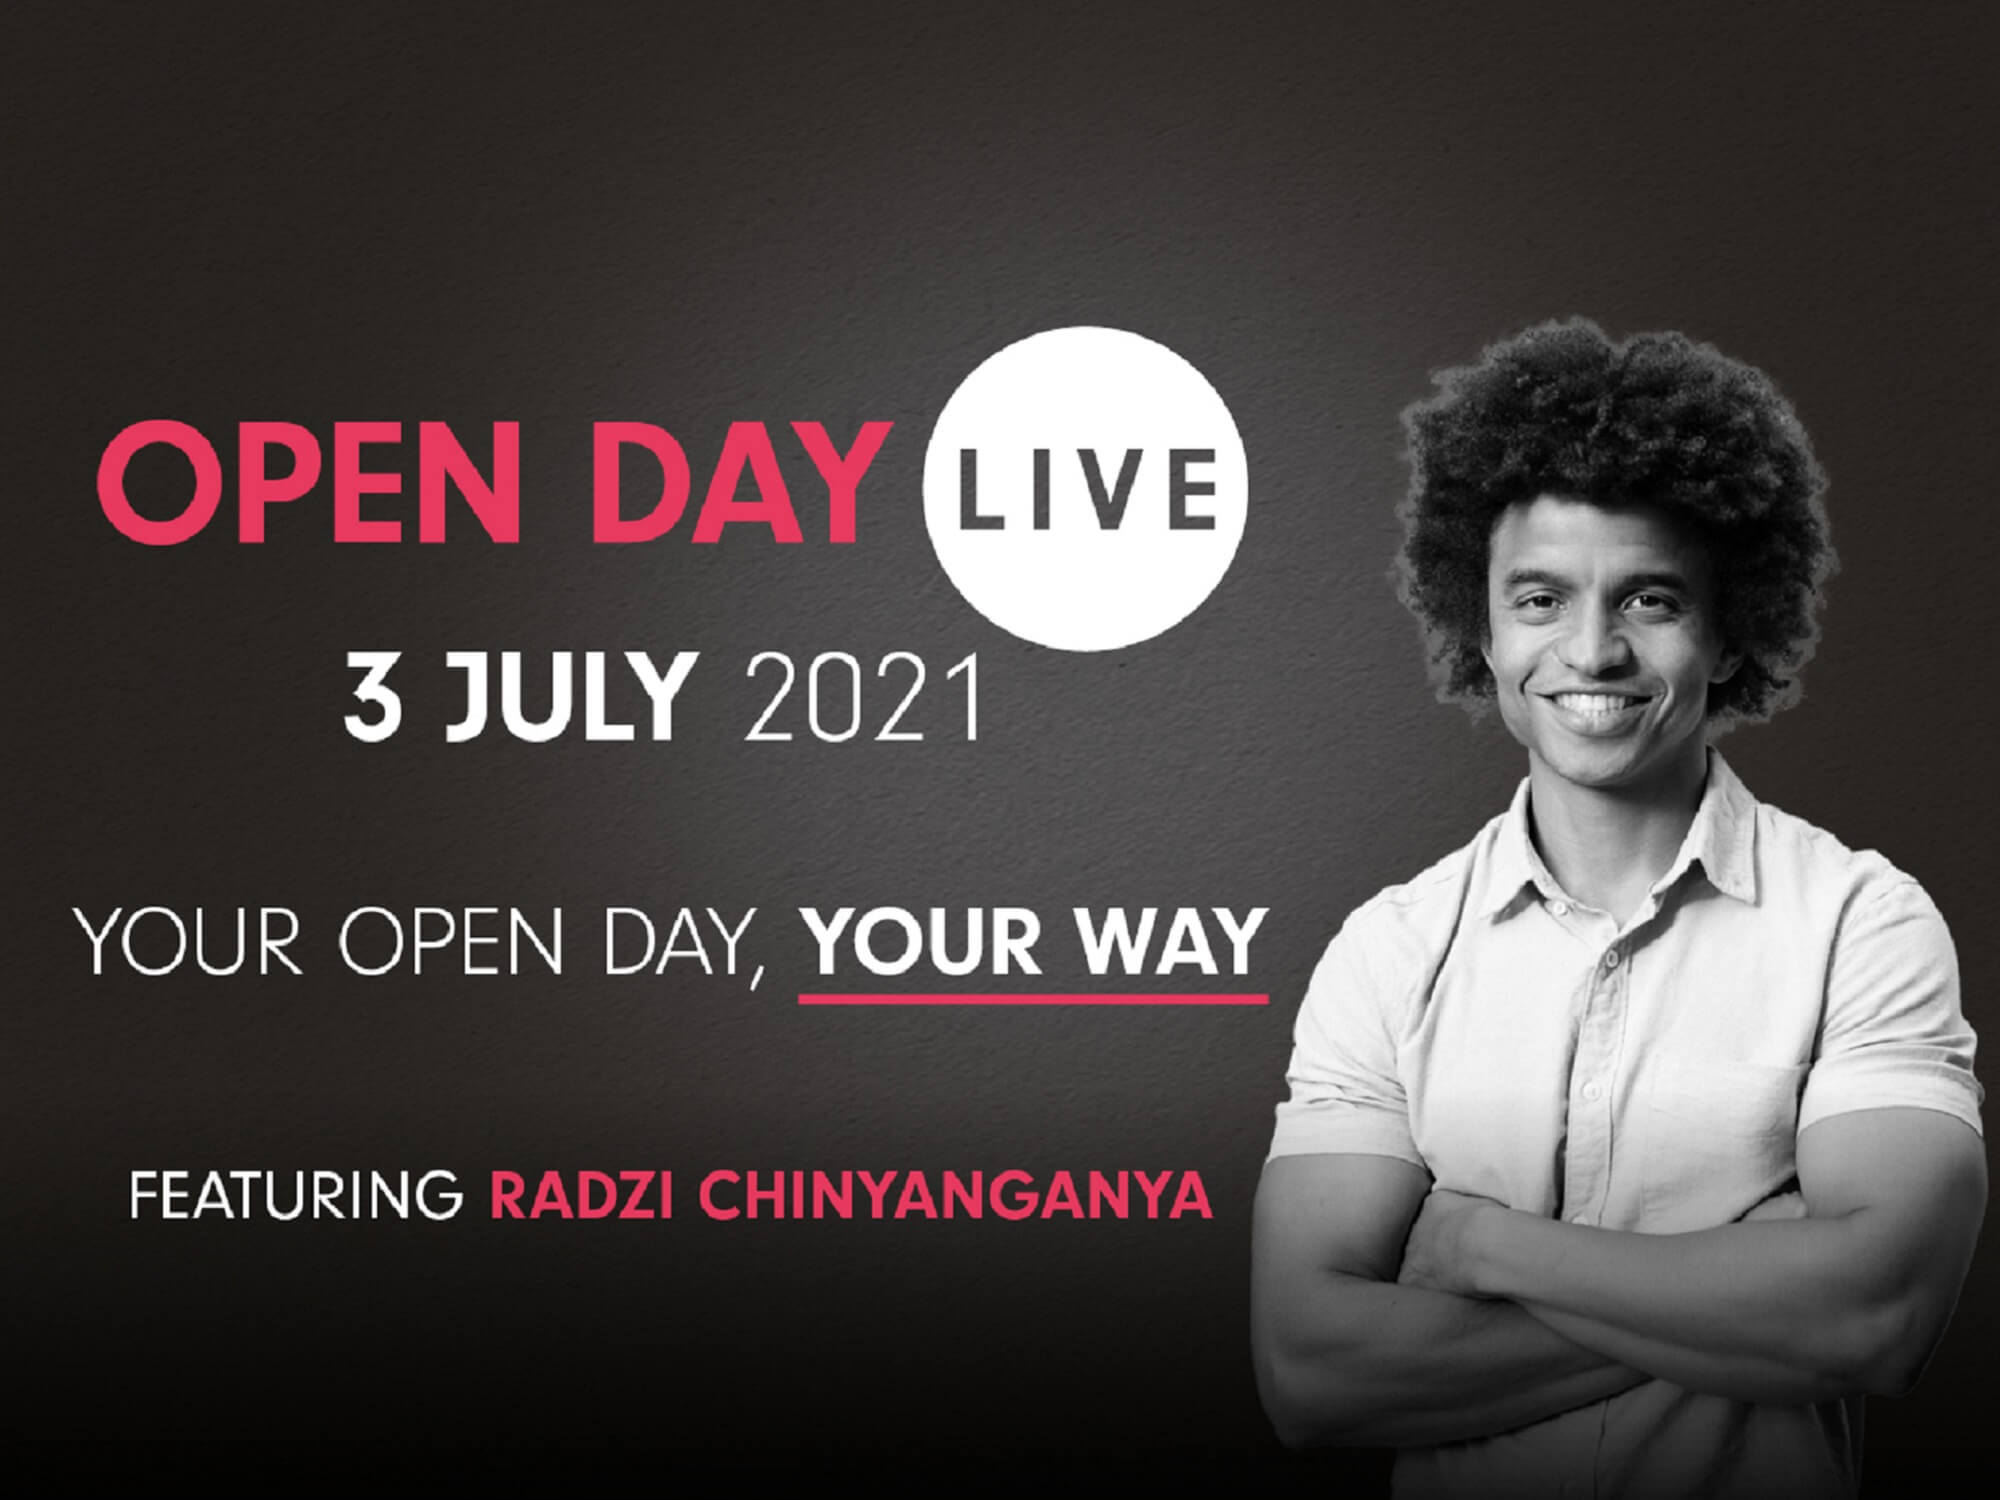 Promotional image for Open Dale Live 3 July 2021 with picture of Radzi Chinyanganya